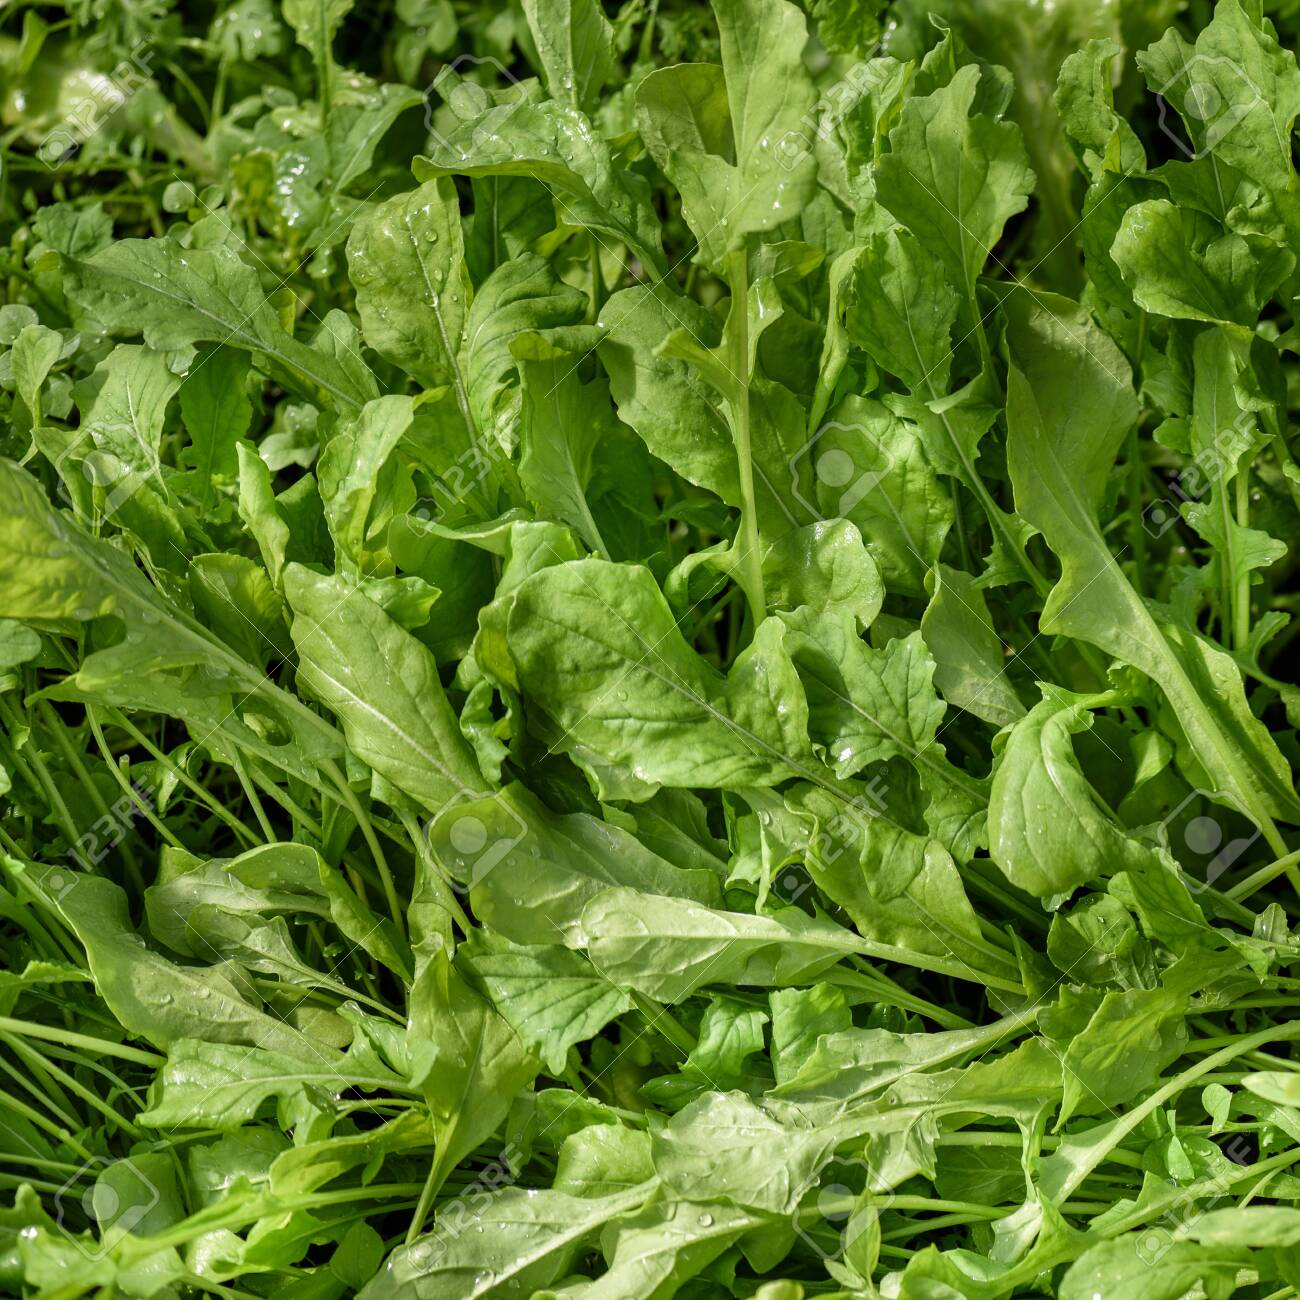 A young, green rucola salad, for dietary nutrition, growing on the bed. - 144498076